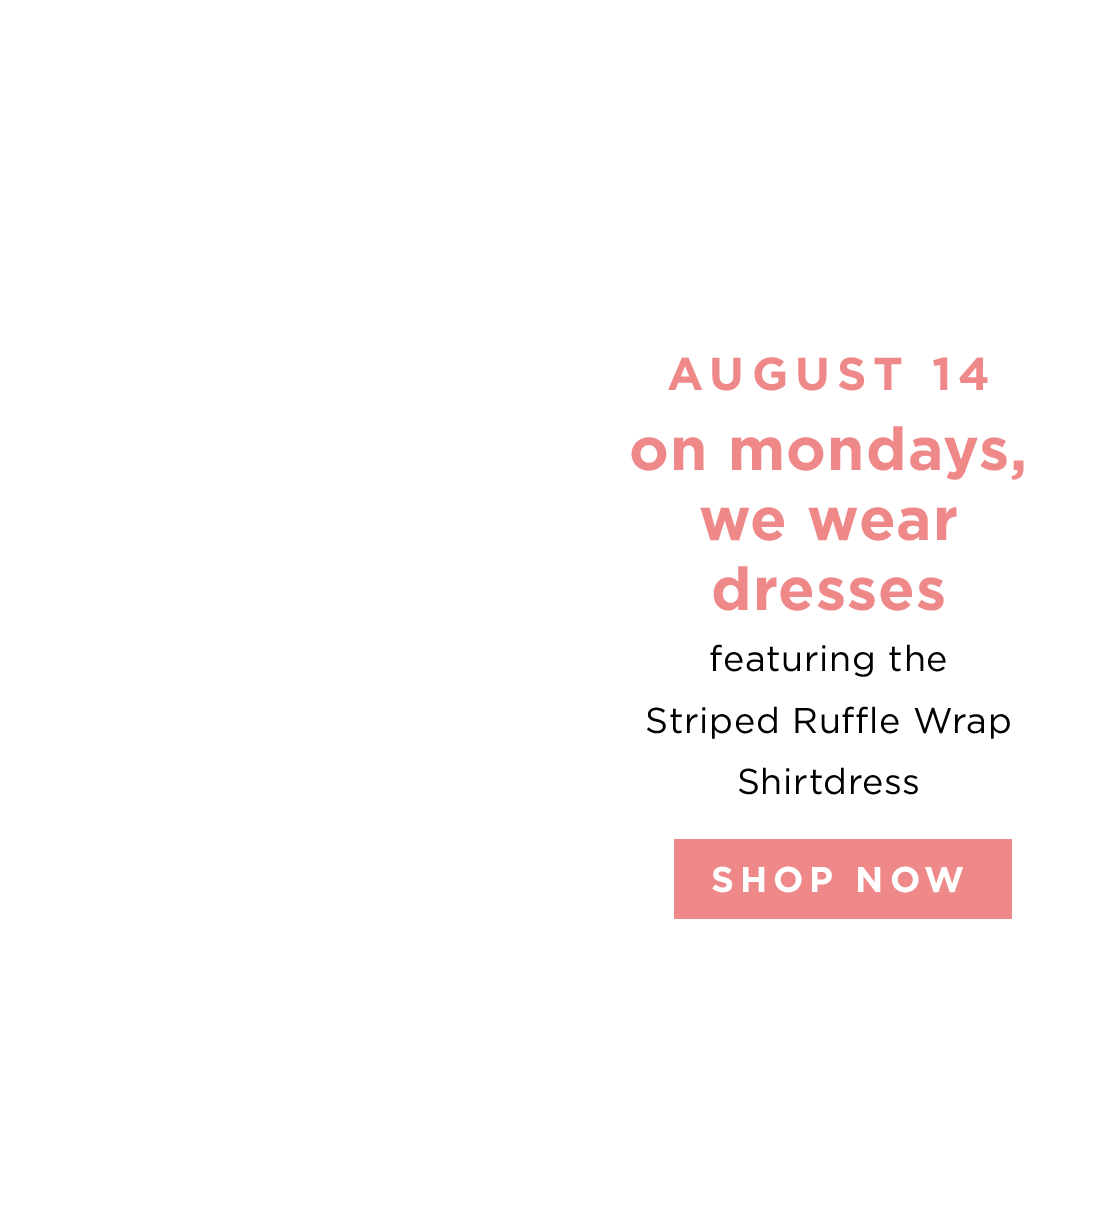 AUGUST 14 - SHOP NOW